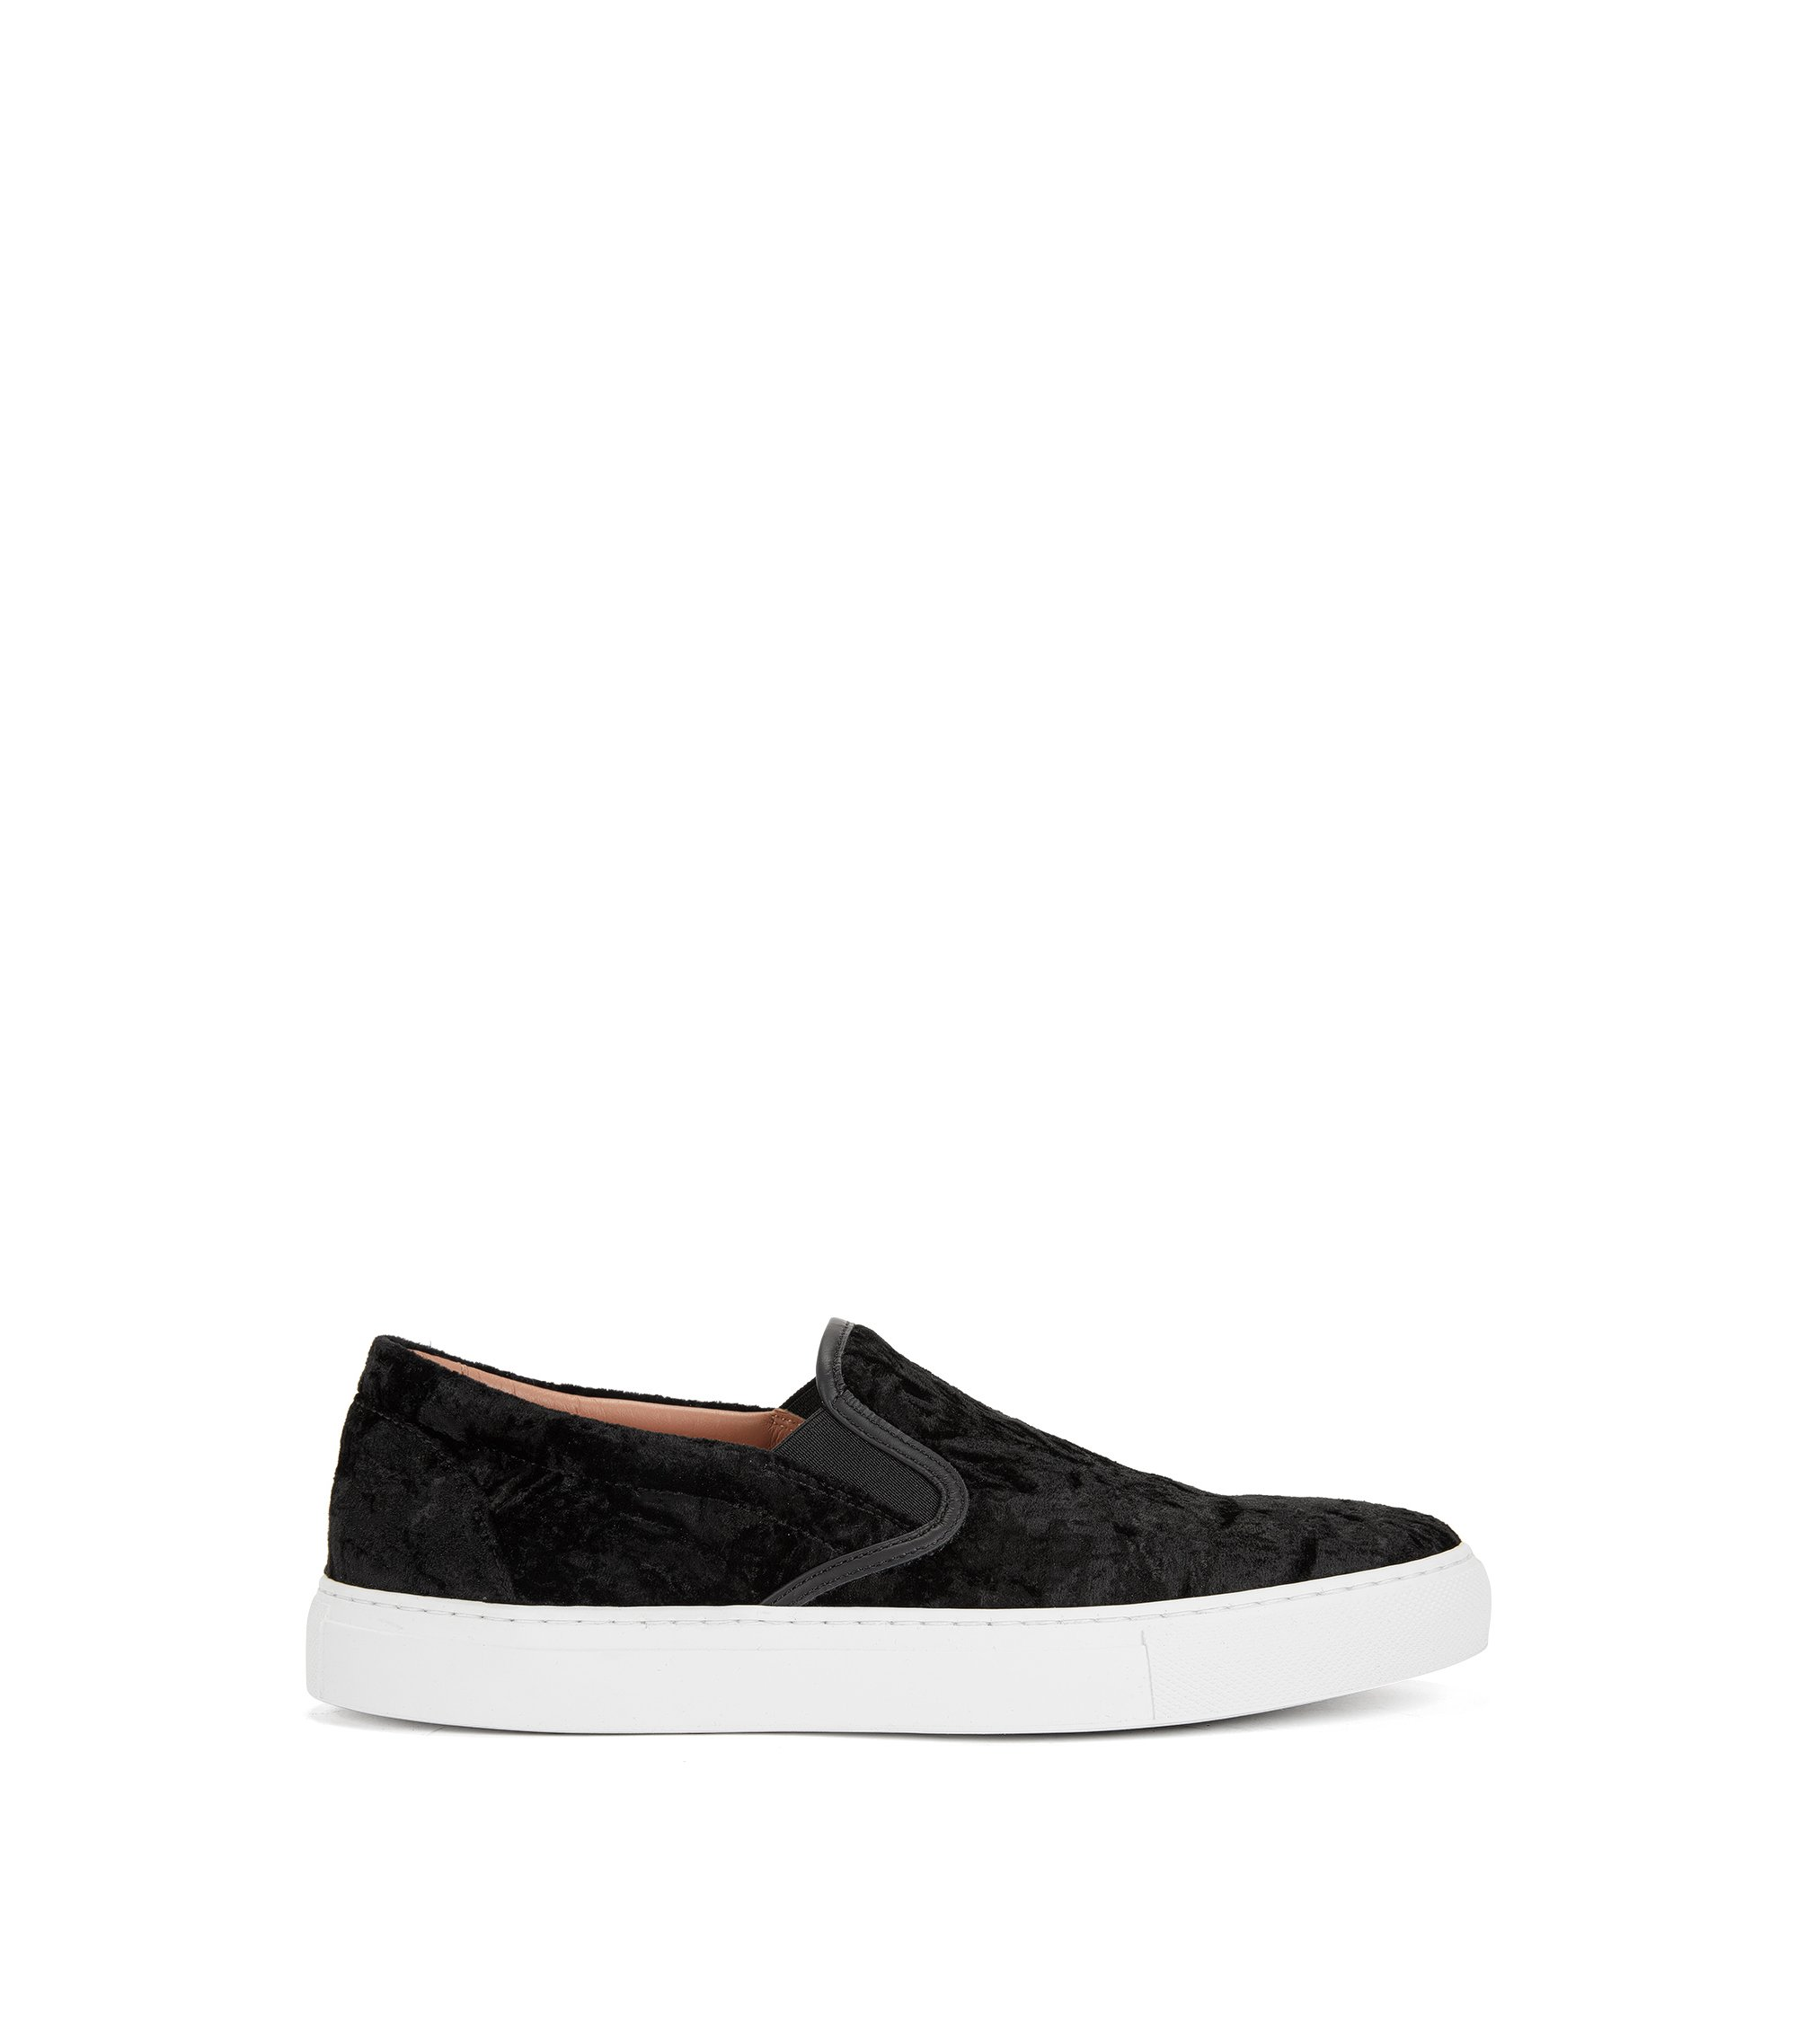 Velvet Slip-On Sneaker | Kate Slip On VL, Black